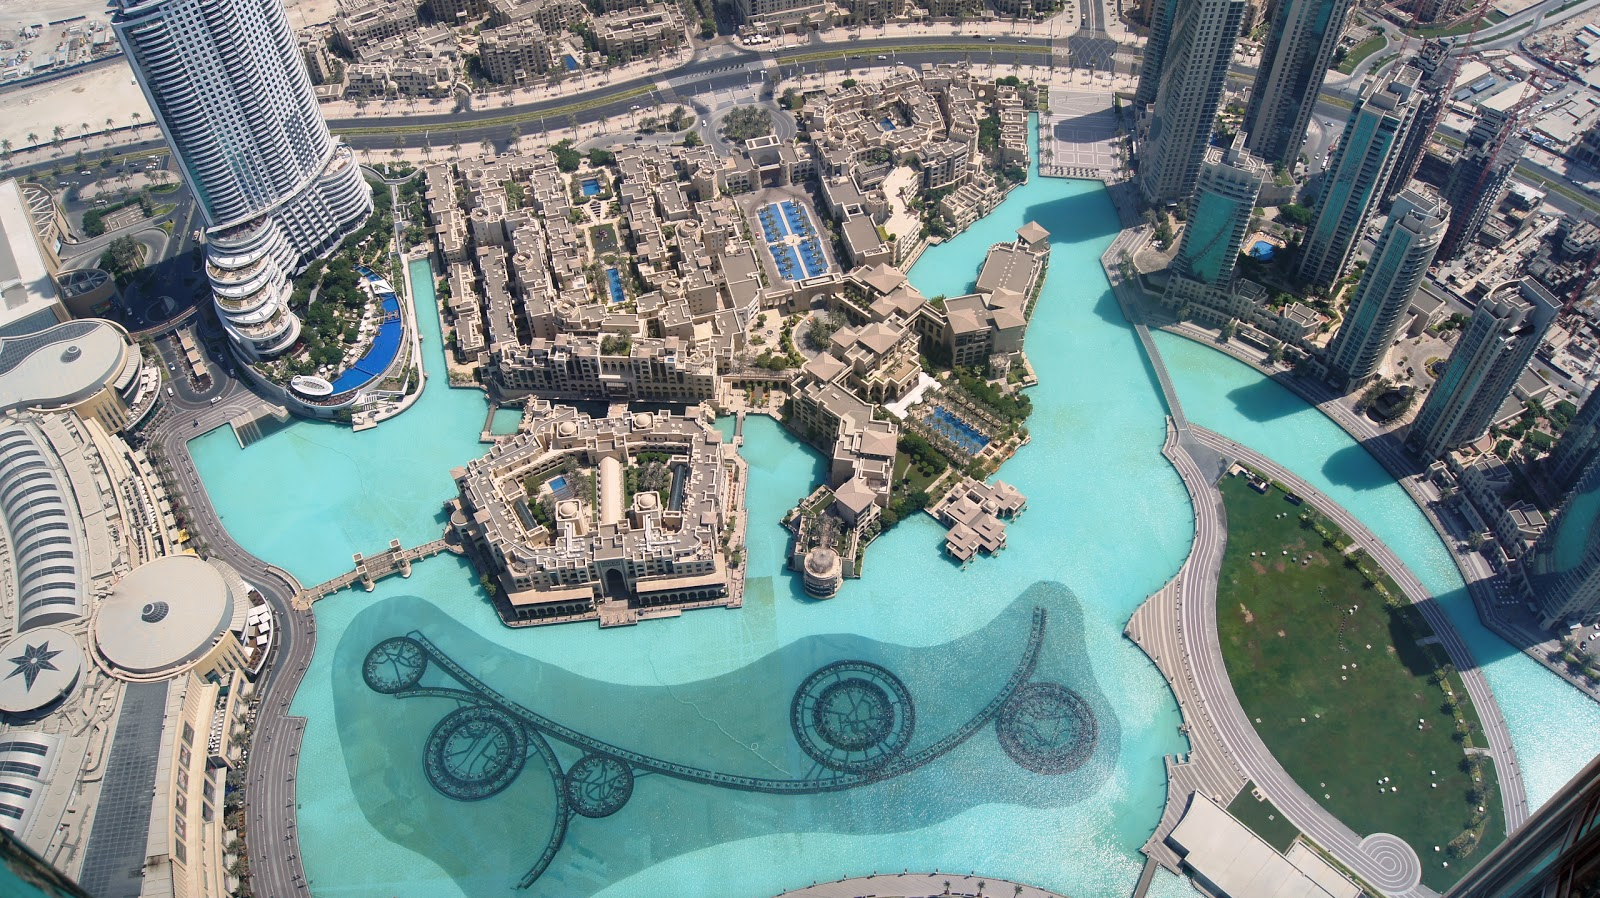 At The Top Burj Khalifa Experience – The Scenic Sights from the Summit of the Middle East